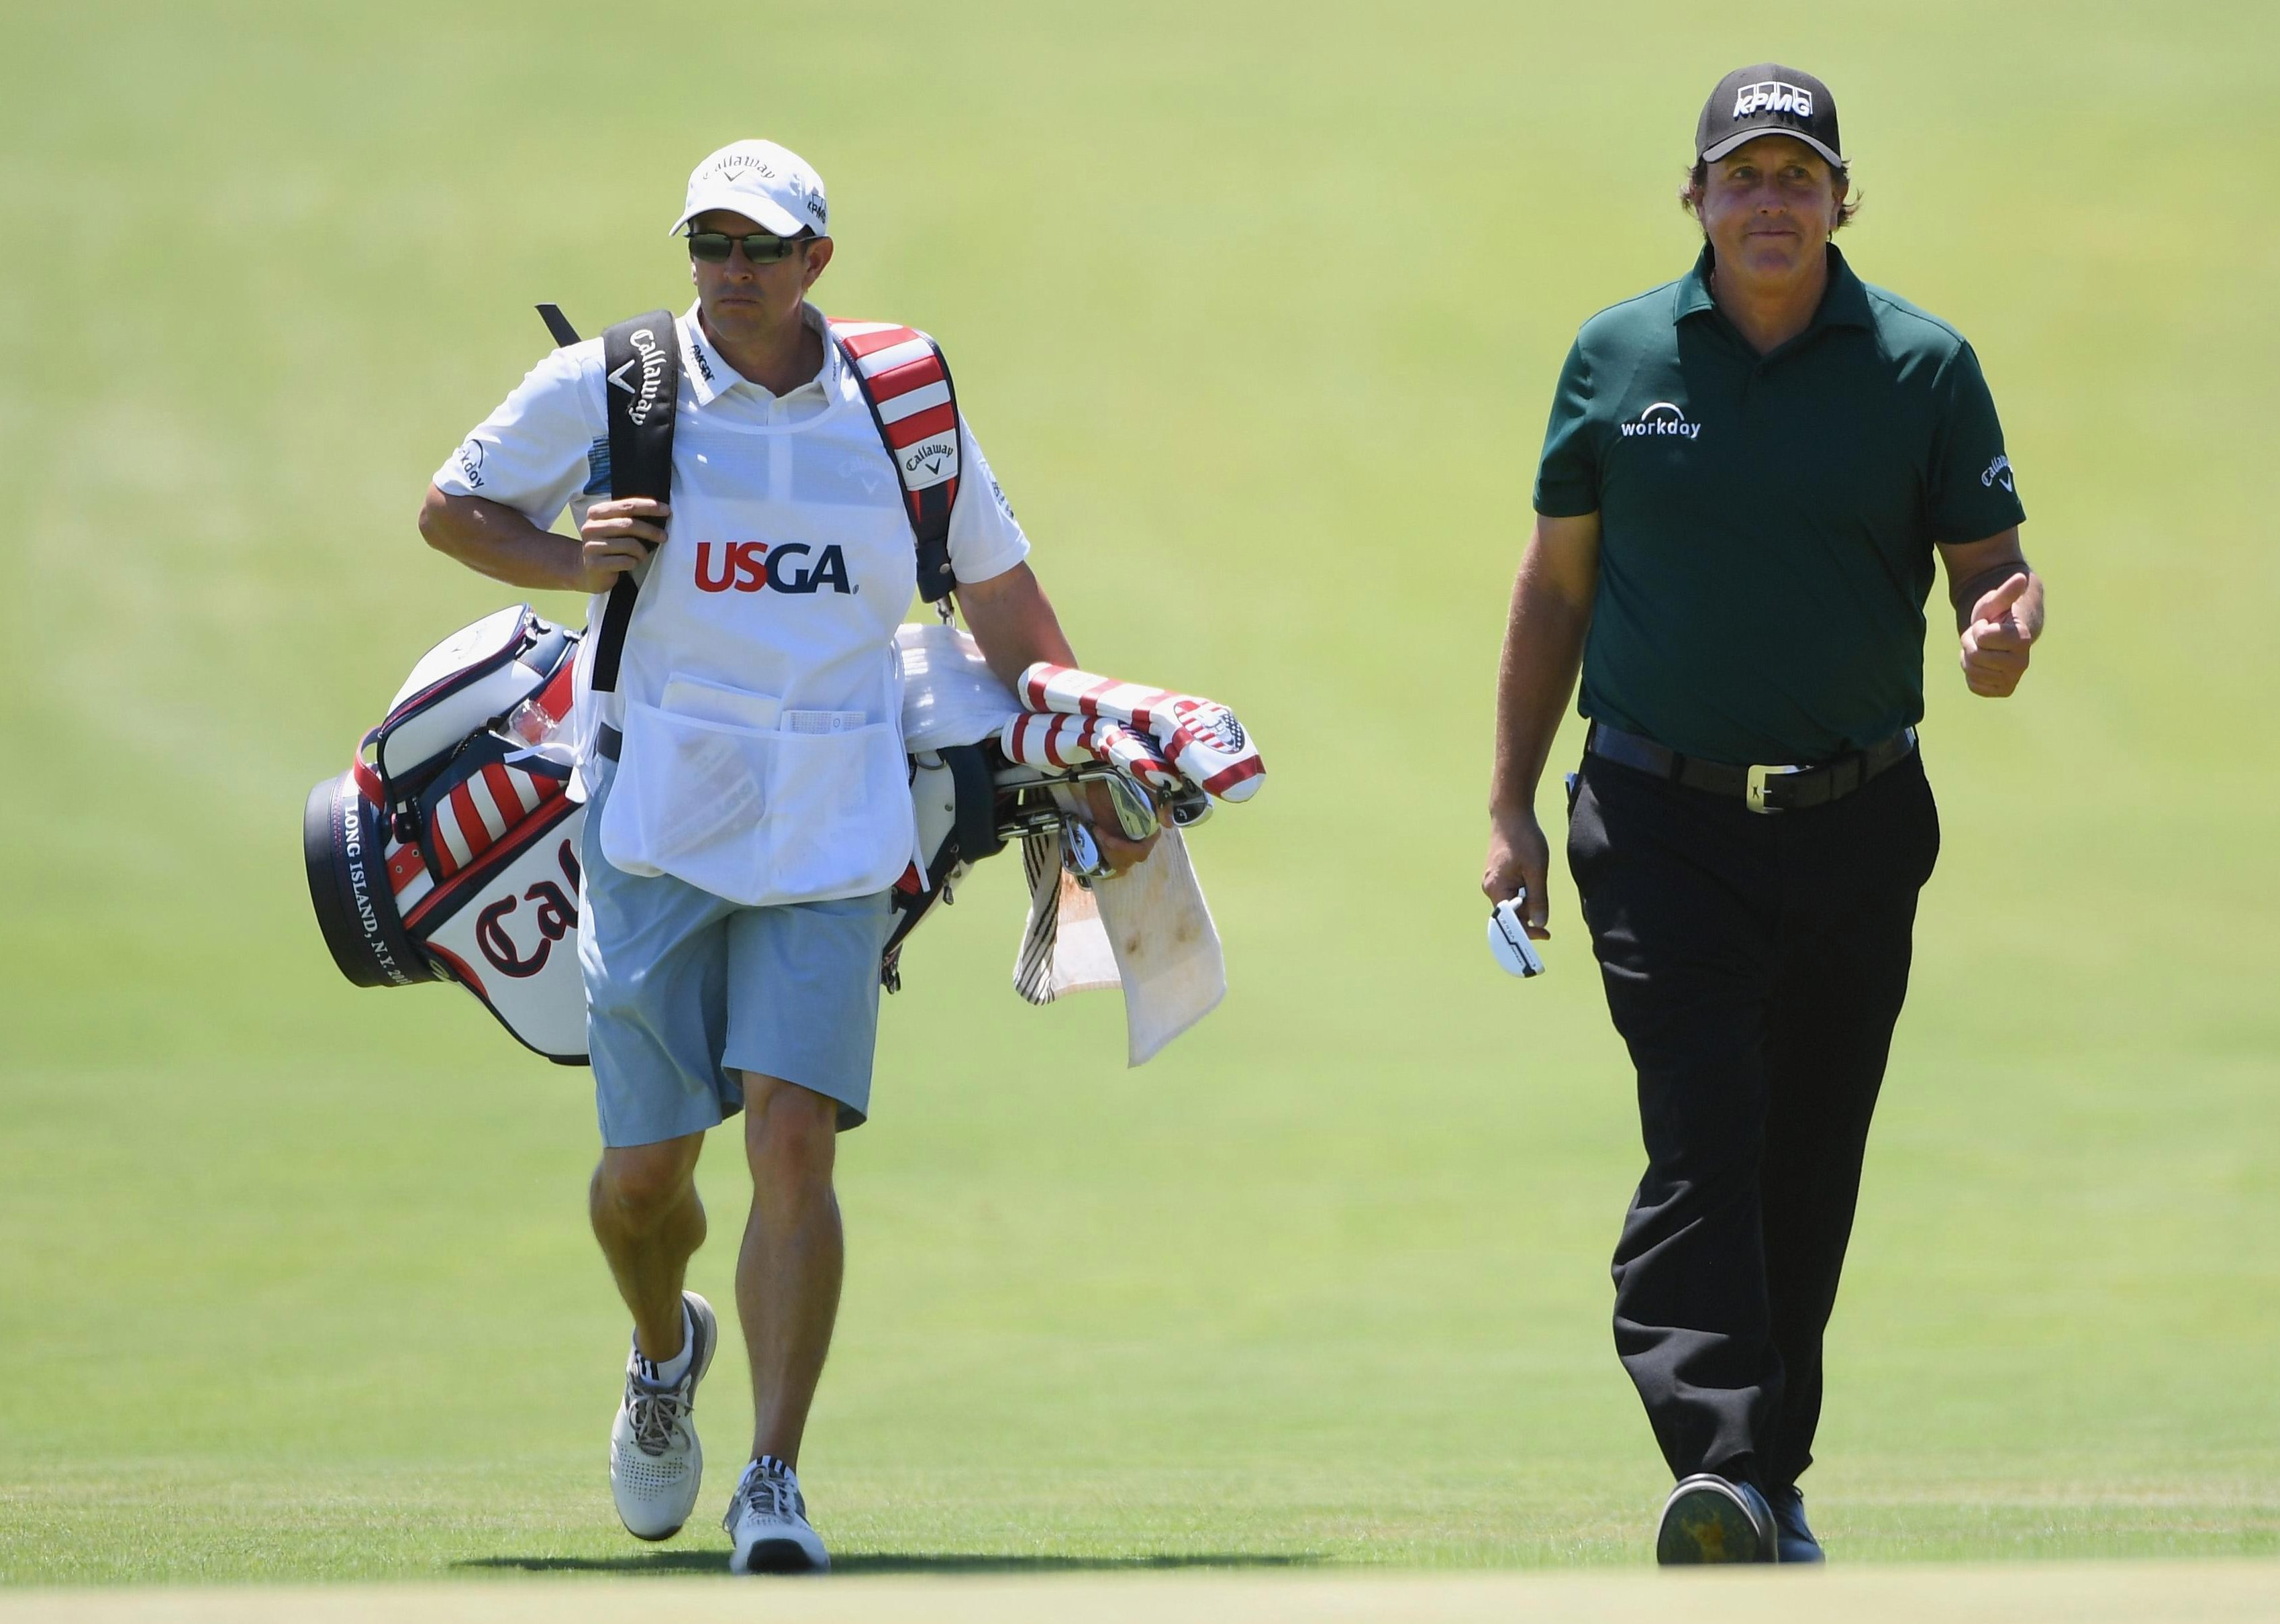 Brother Tim has been caddie for Phil full-time since December 2017